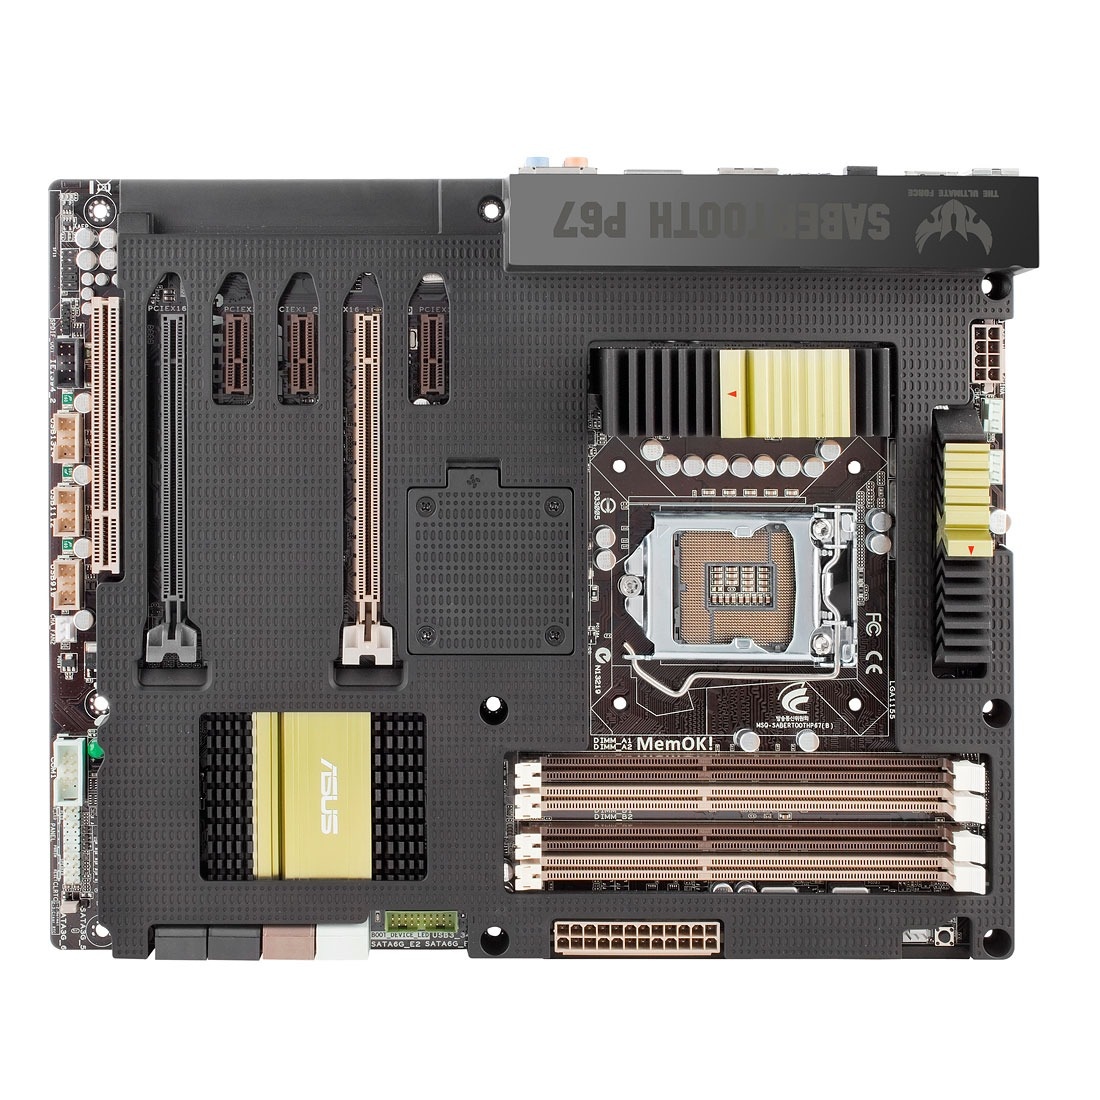 Carte mère ASUS SABERTOOTH P67 REV 3.0 Carte mère ATX Socket 1155 Intel P67 Express Revision B3 (garantie 3 ans)